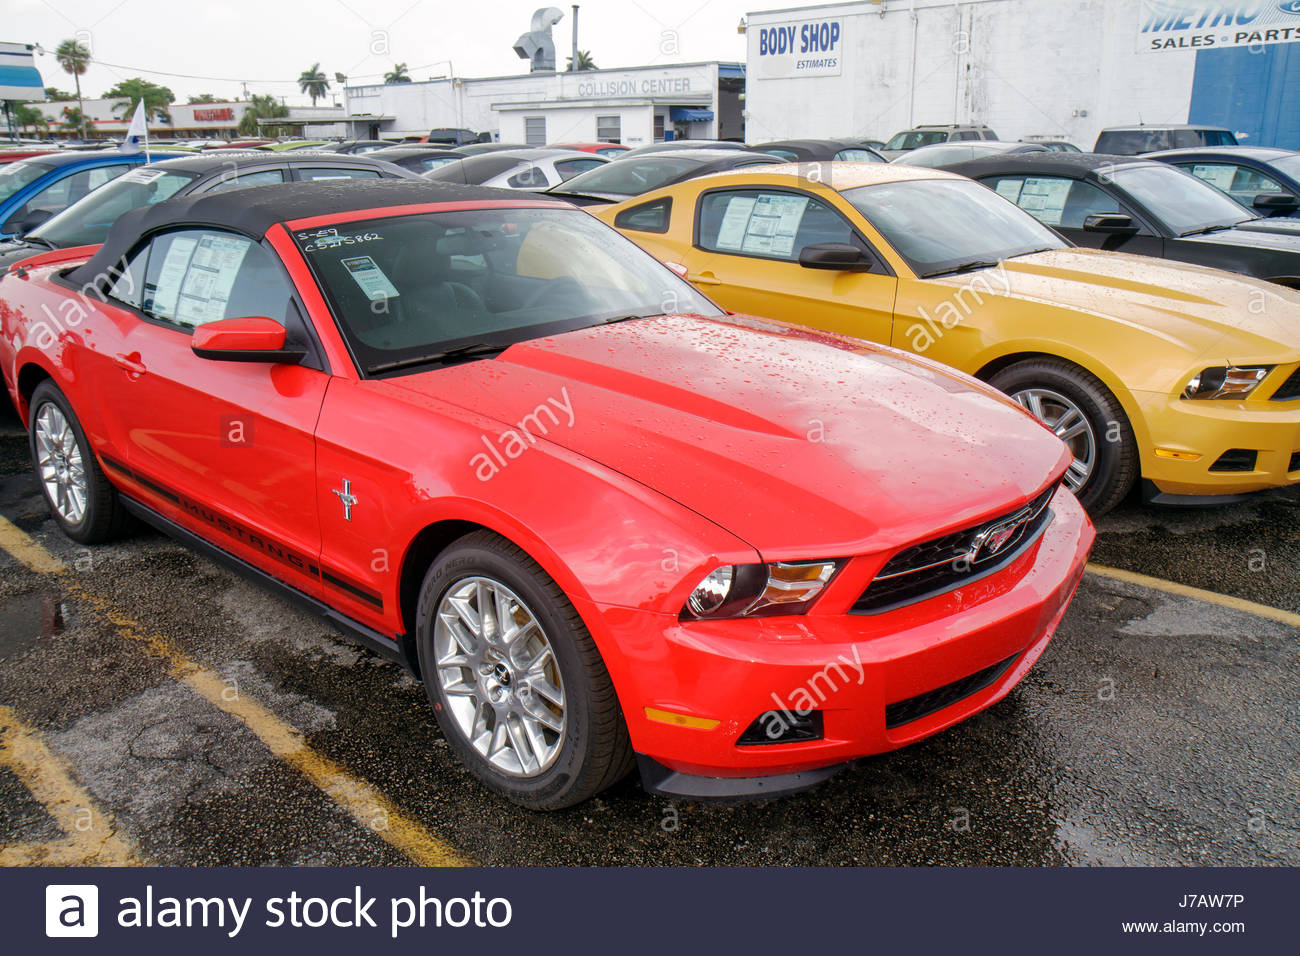 Miami Florida Metro Ford dealer new cars lot red Mustang convertible ...